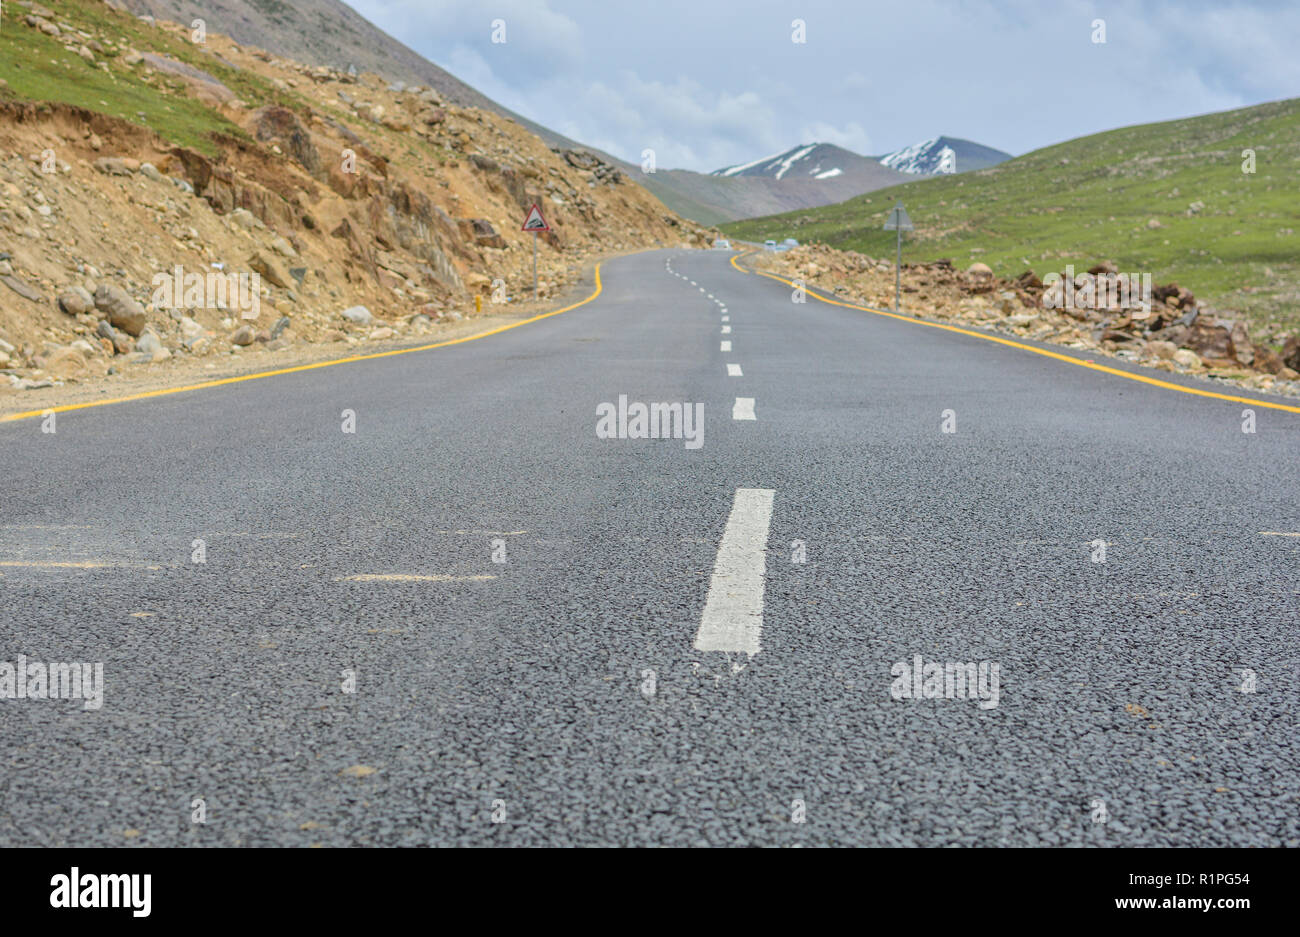 Alone on an empty highway - Stock Image